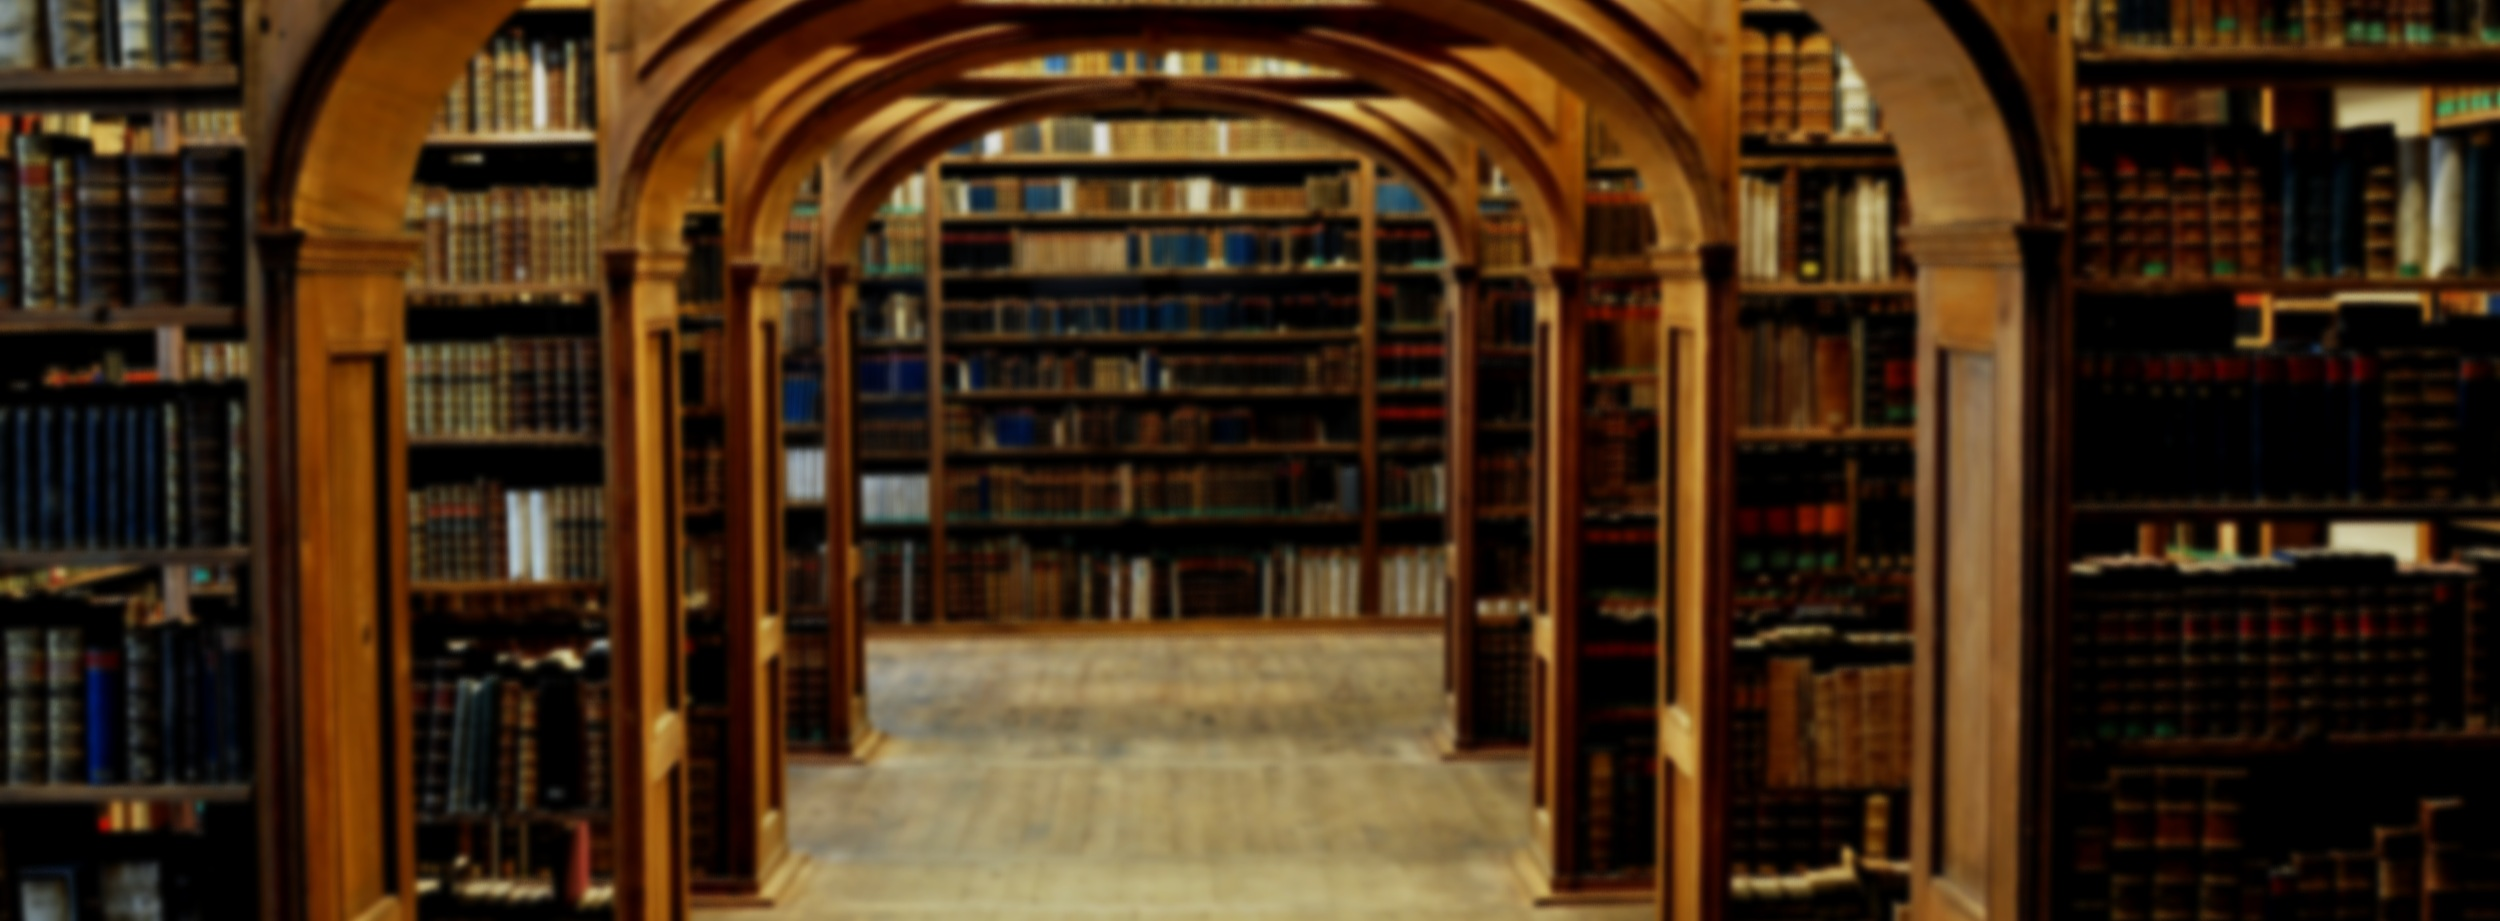 The library -